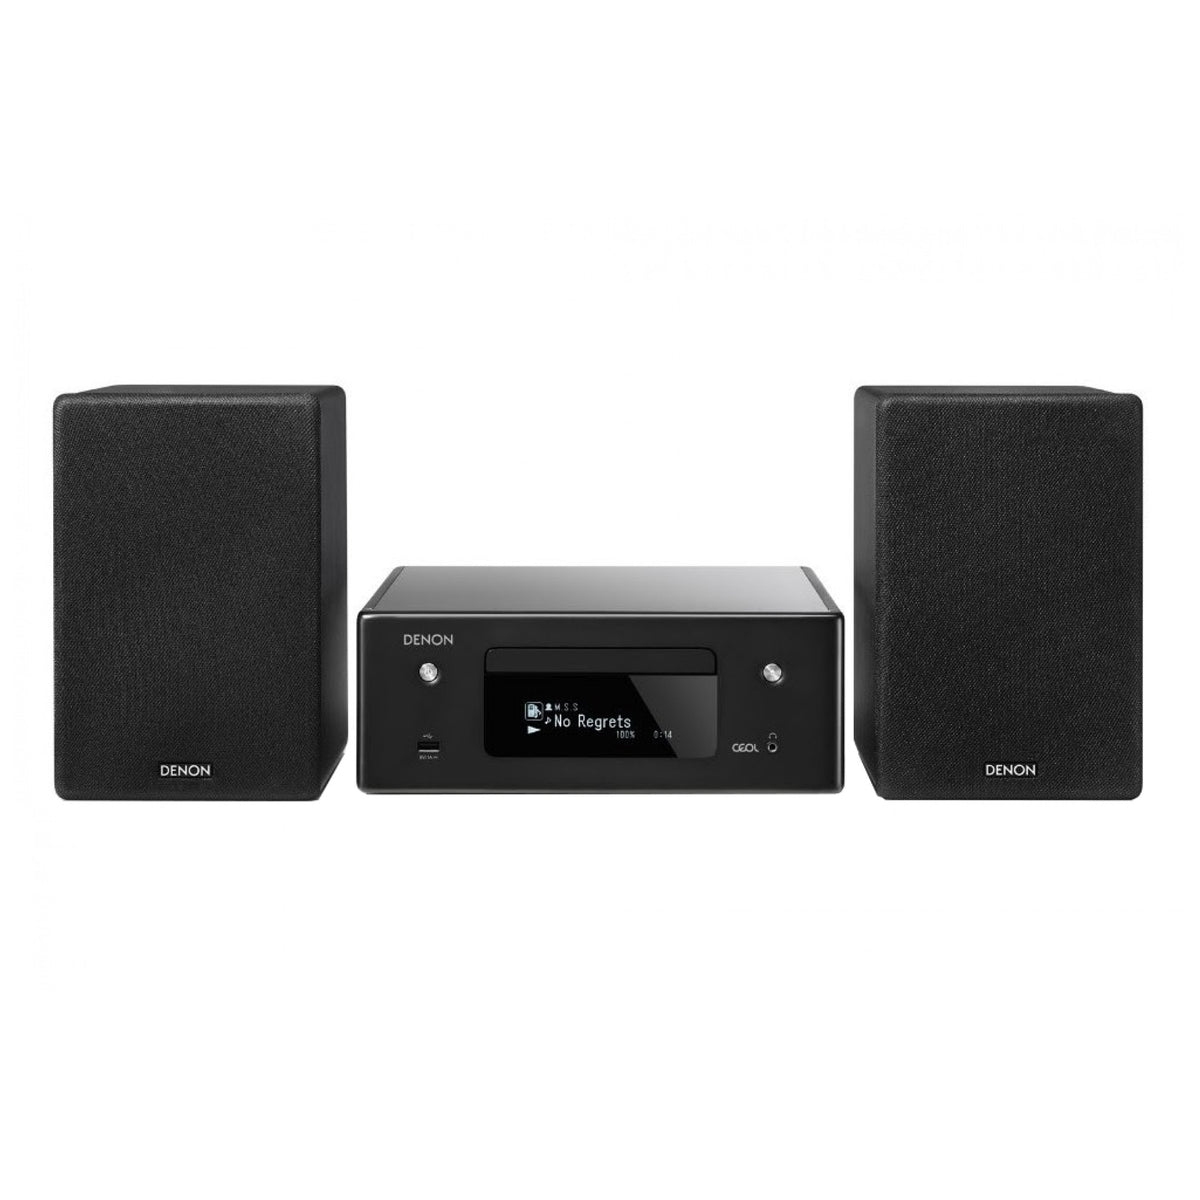 Denon: CEOL-N10 Hi-Fi Network Mini System w/ Bluetooth